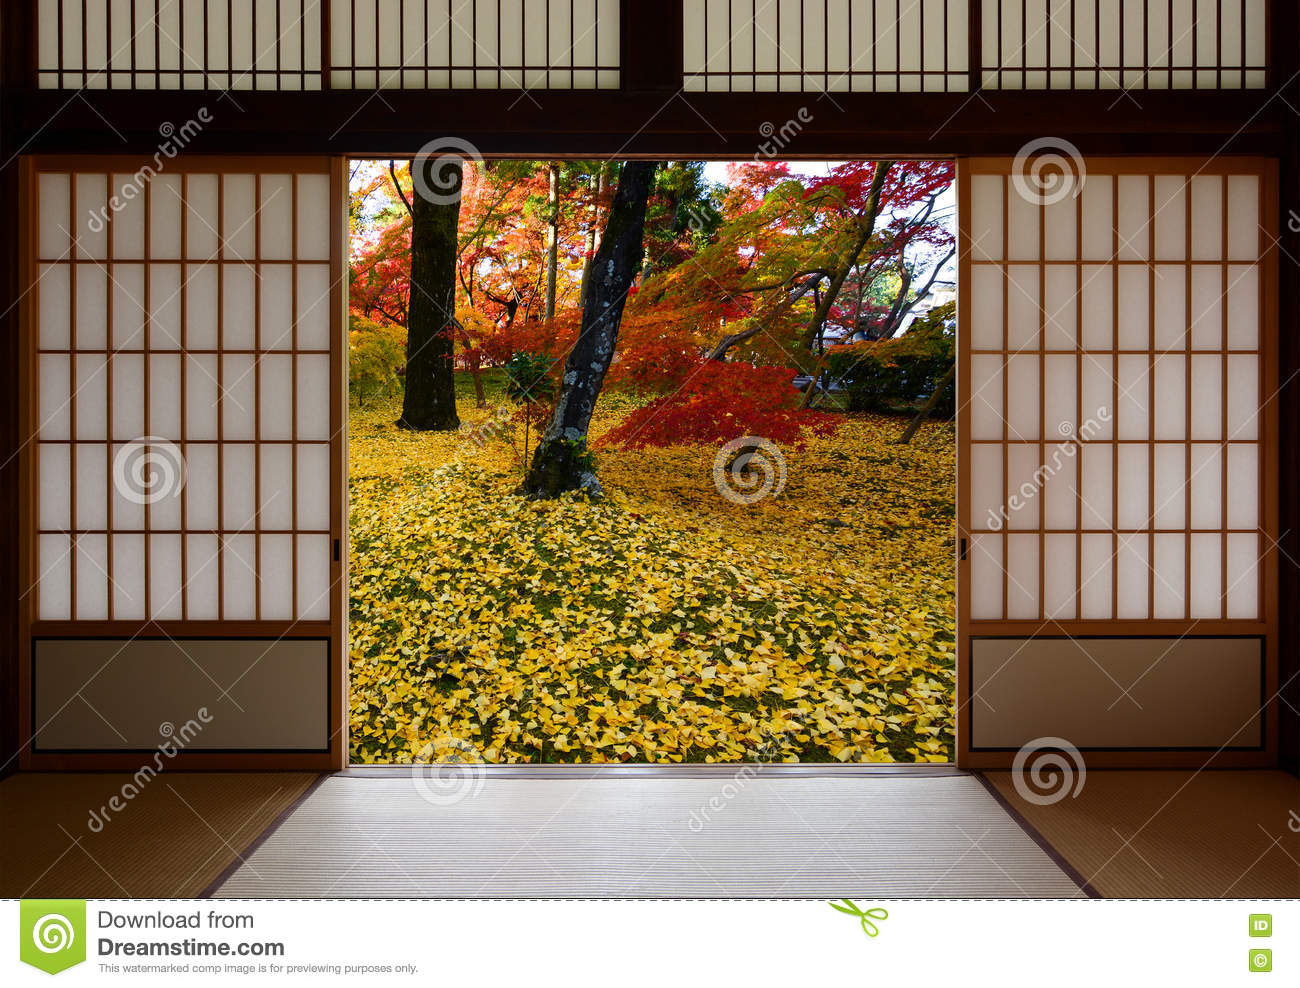 Japanese sliding wood doors open to an autumn sight of fallen yellow ginkgo leaves